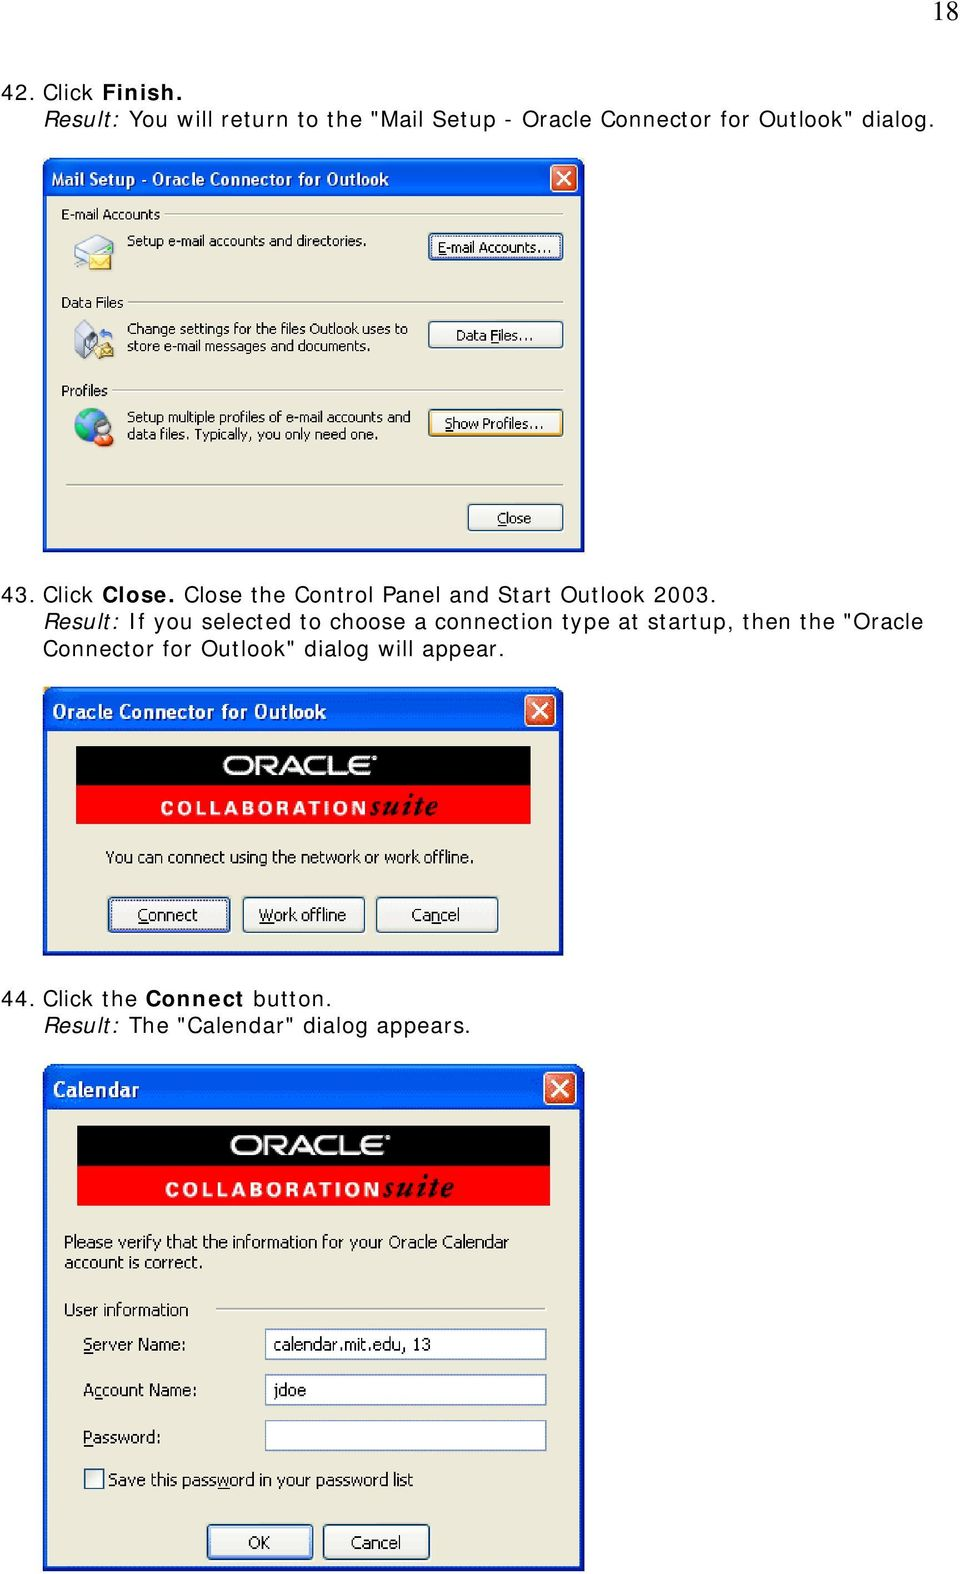 Click Close. Close the Control Panel and Start Outlook 2003.